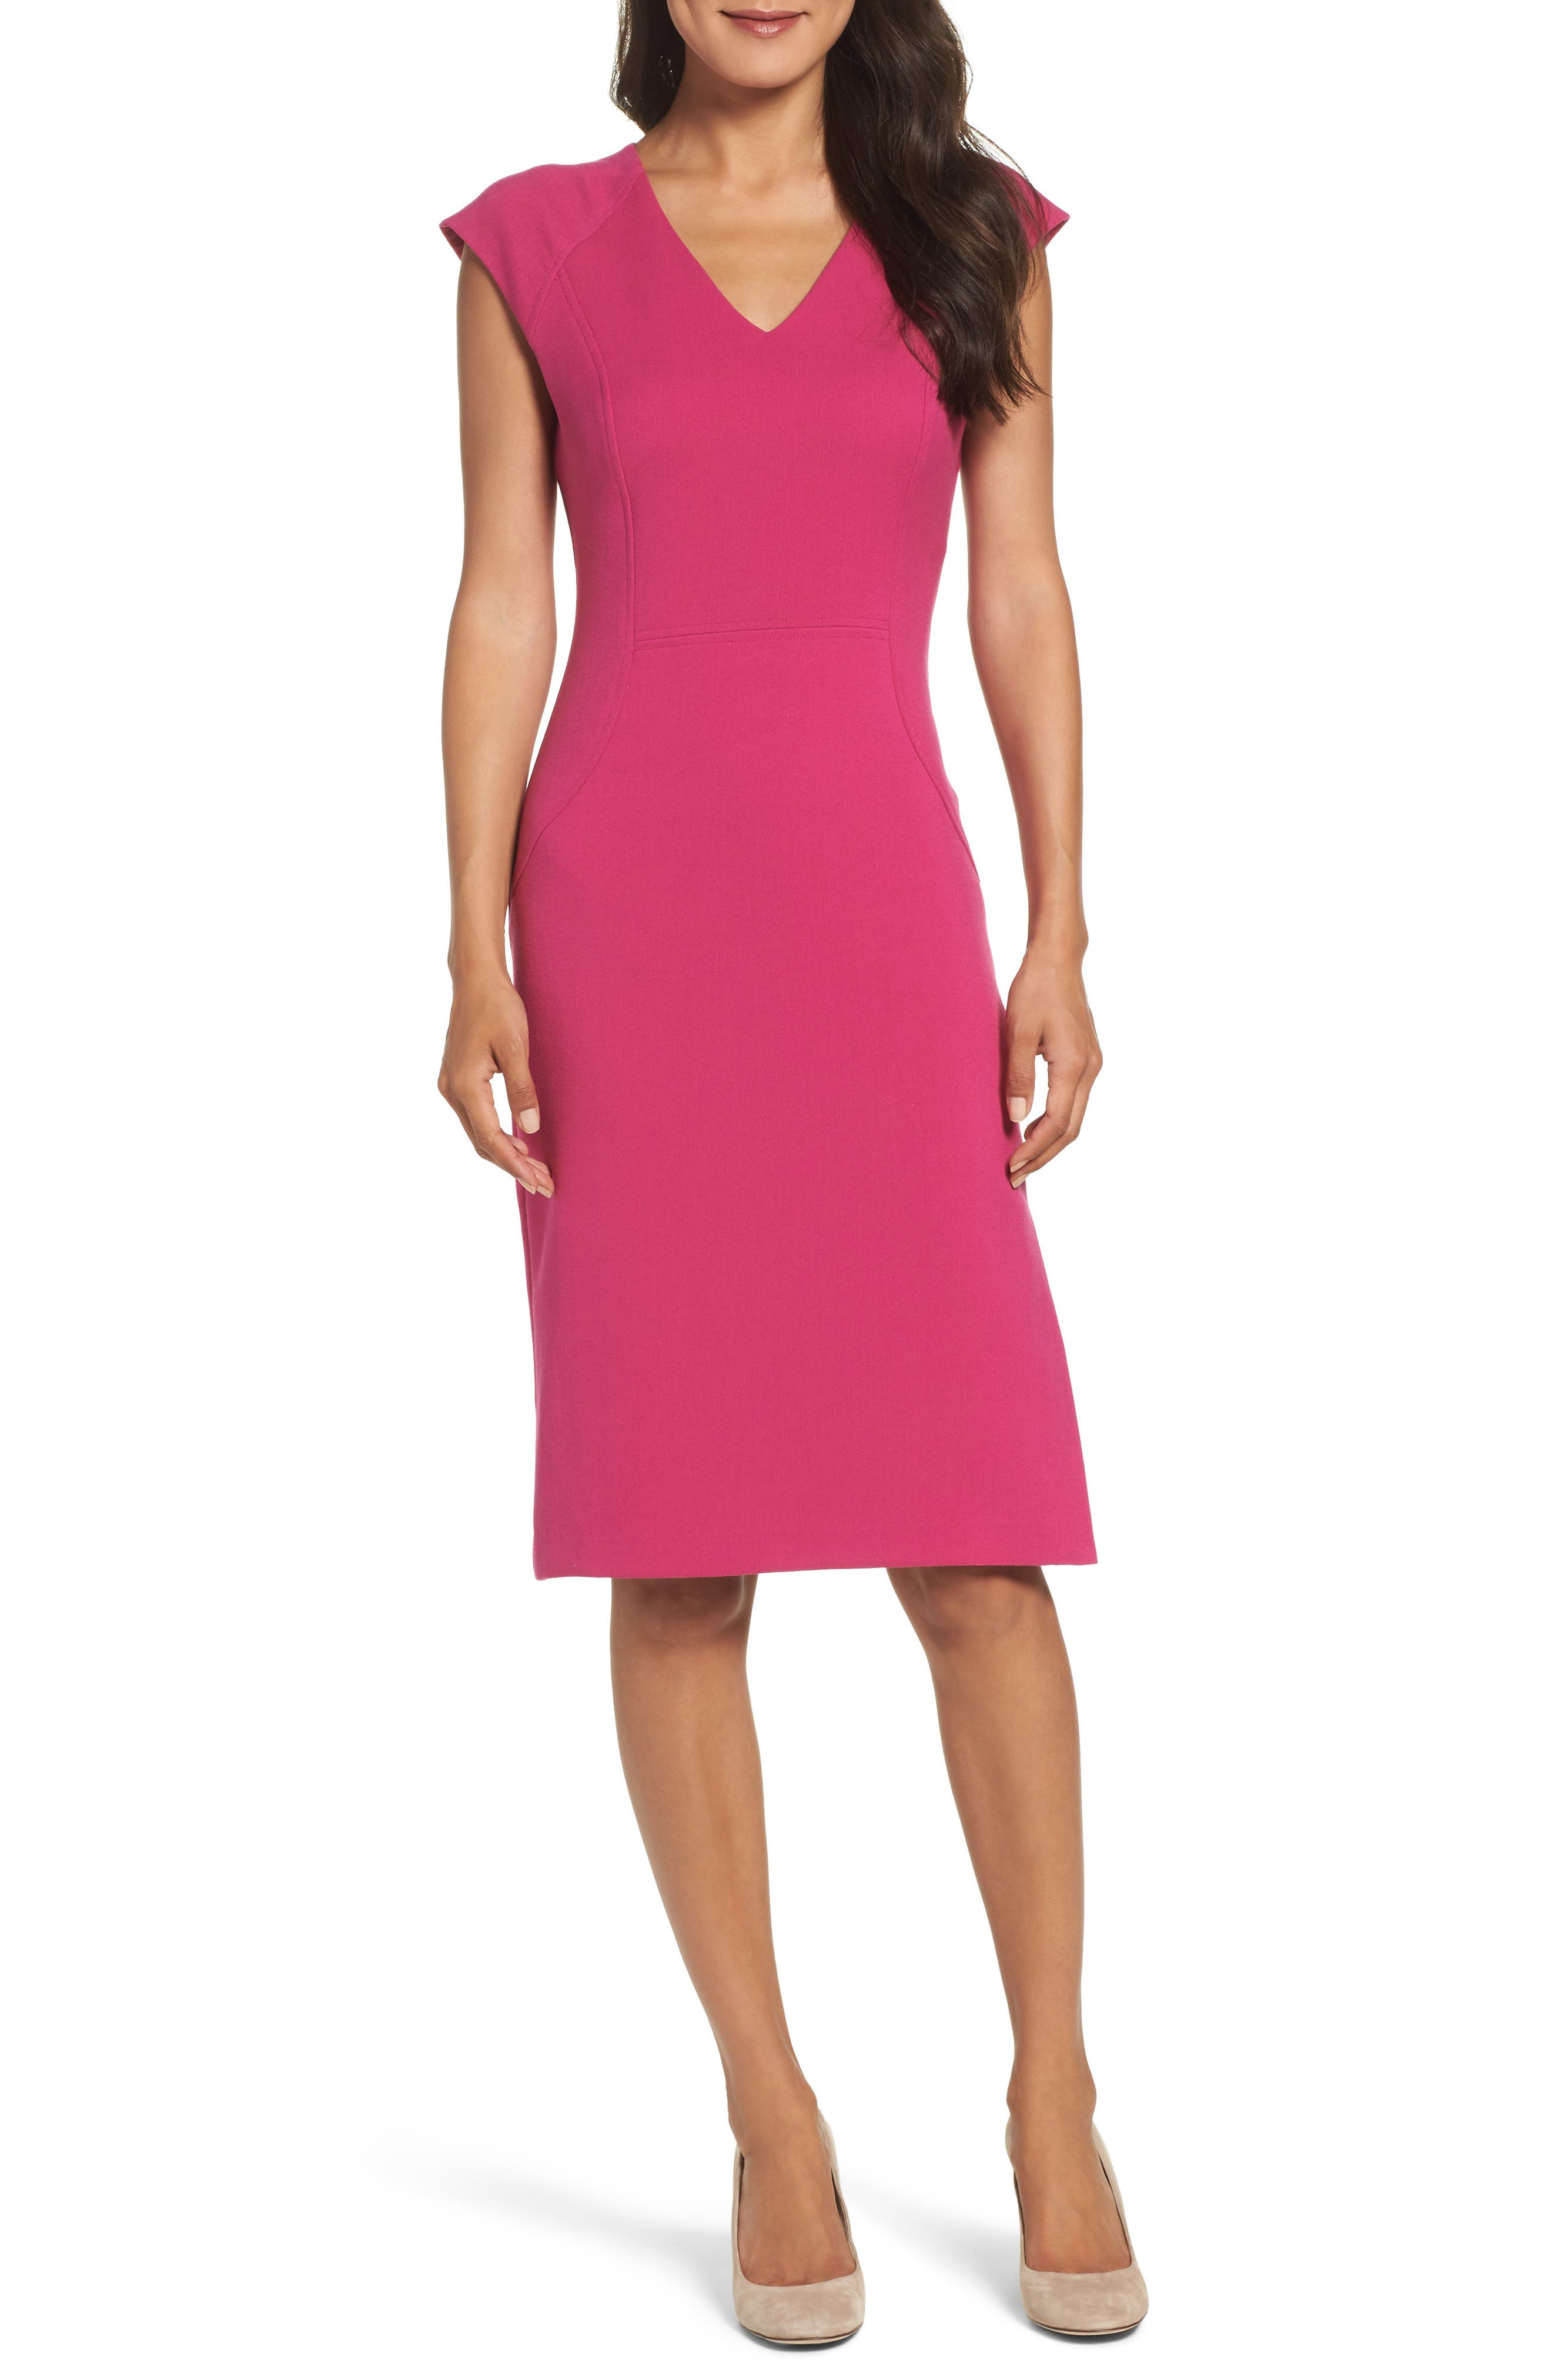 Alternate Image 1 Selected - Vince Camuto Body-Con Dress